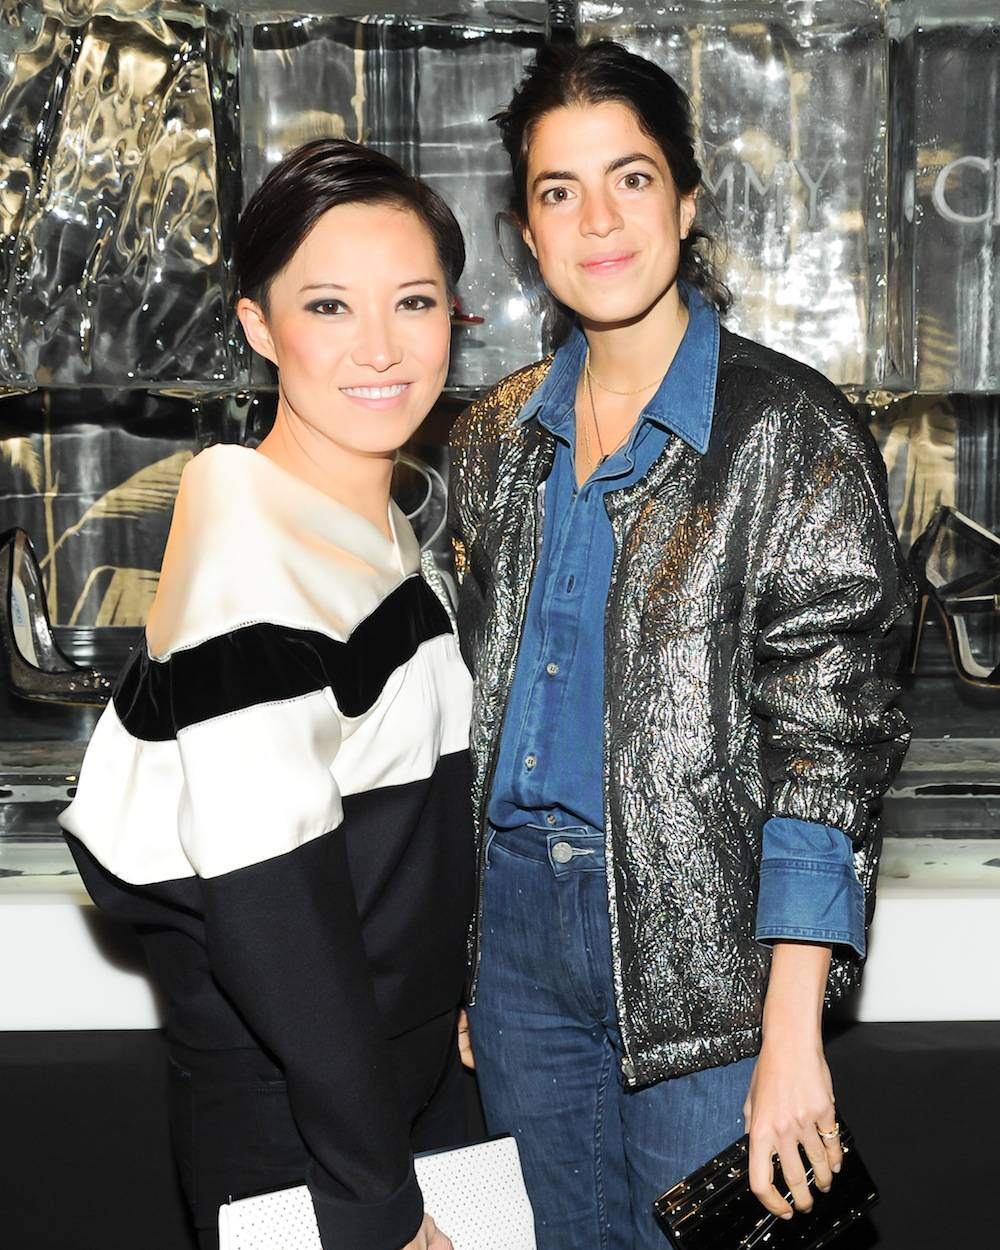 JIMMY CHOO and Sandra Choi celebrate the Cruise Collection at No. 8 New York